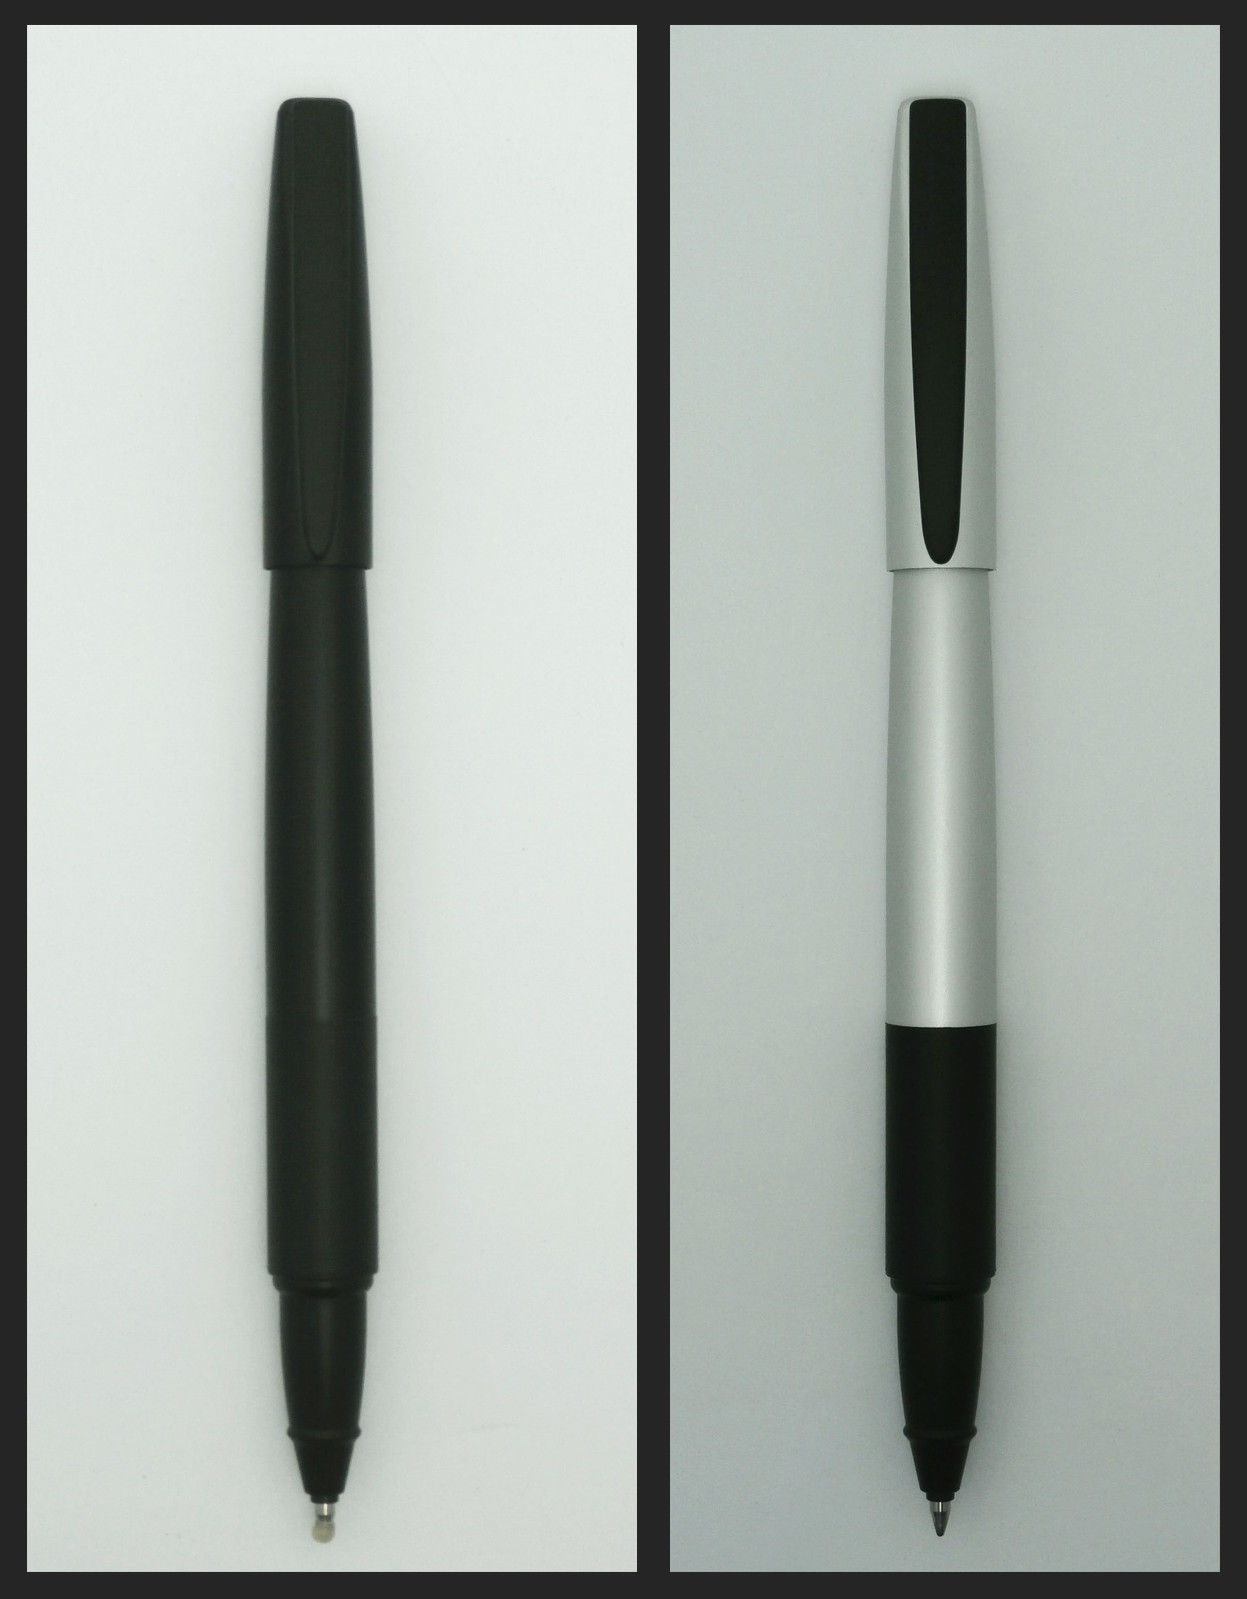 Primary image for Tombow Zoom 535 Rollerball Pen + Gift Box & Refill Made in Japan, Free Shipping!